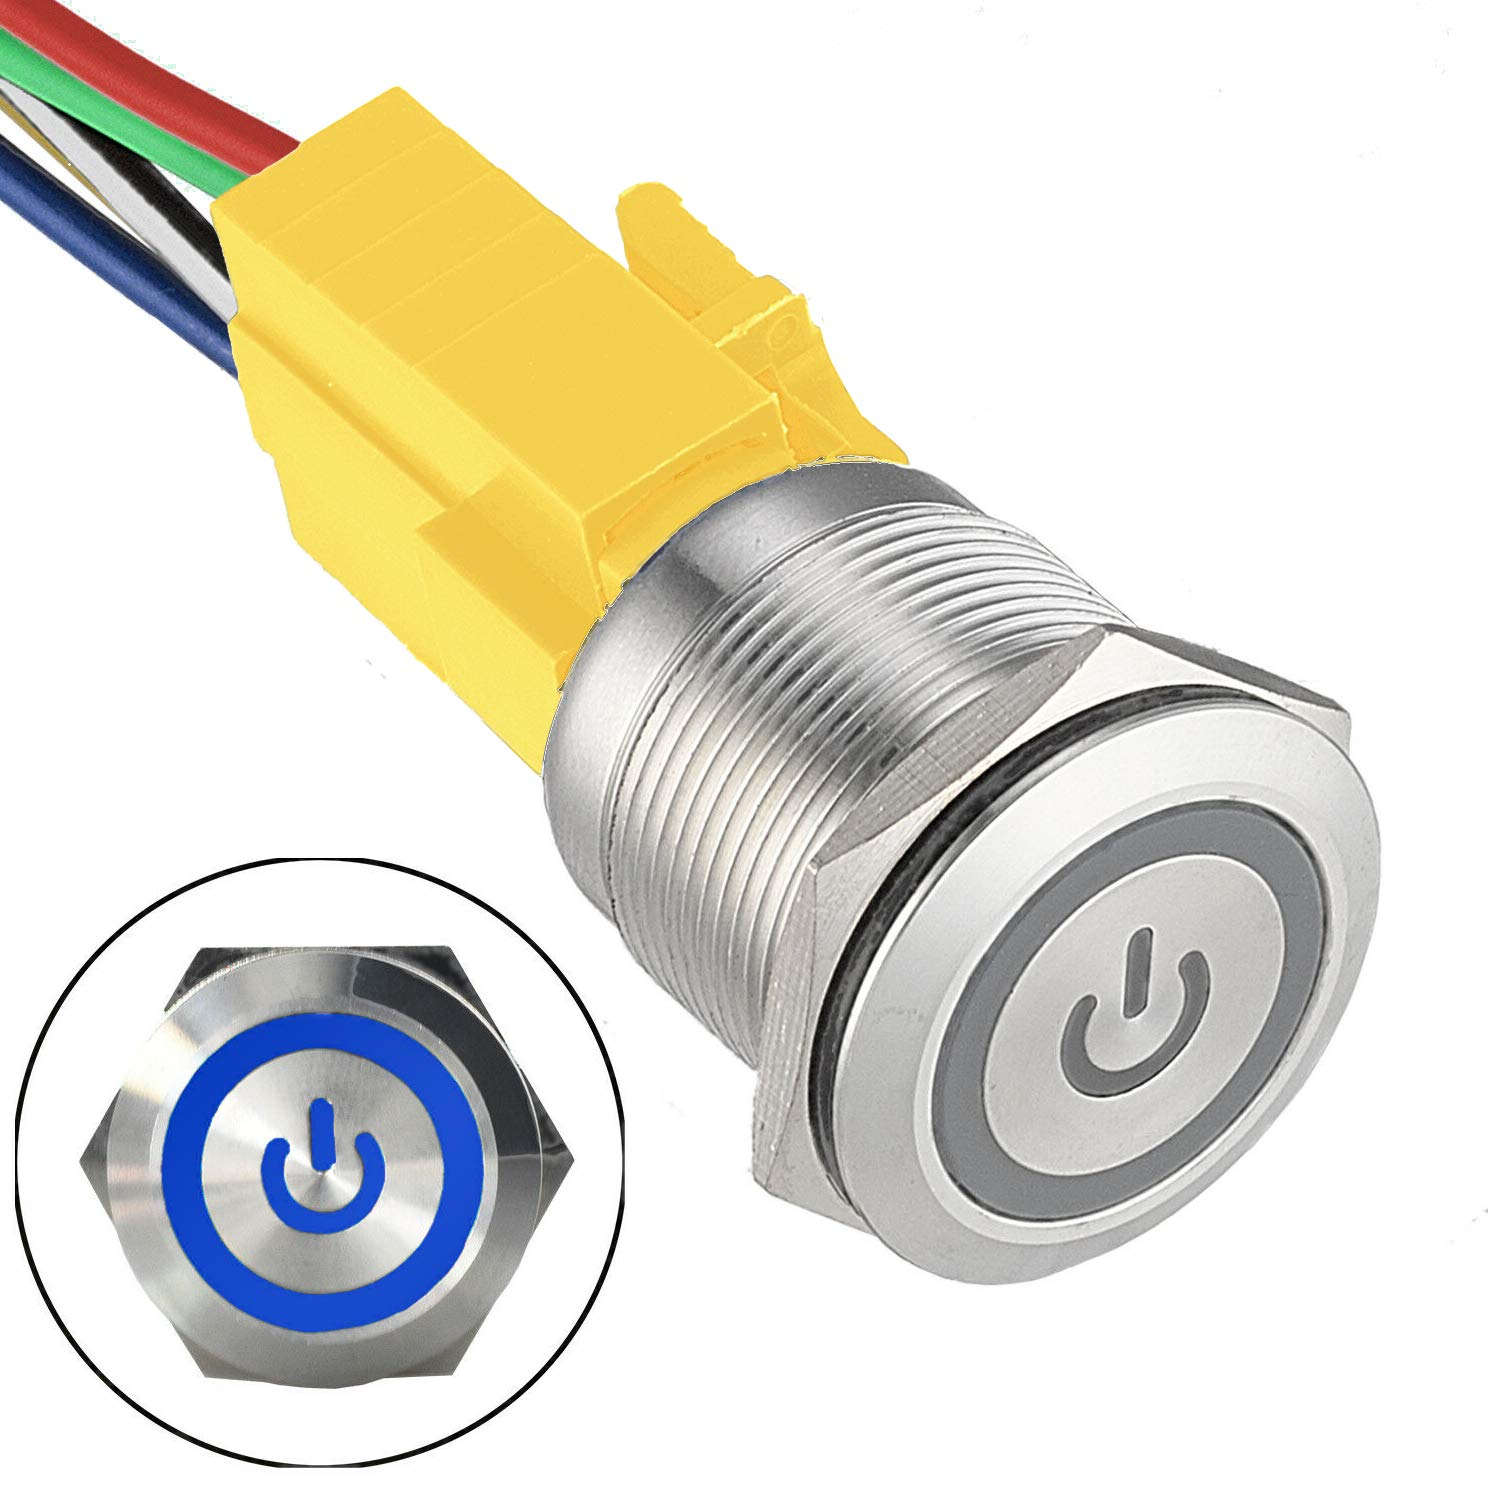 16mm Wire Harness Included Diameter Panel Cutout Hole JacobsParts Latching Maintained Pushbutton ON//OFF Power Switch Circular Metal Silver with Blue Power Symbol LED fits 5//8